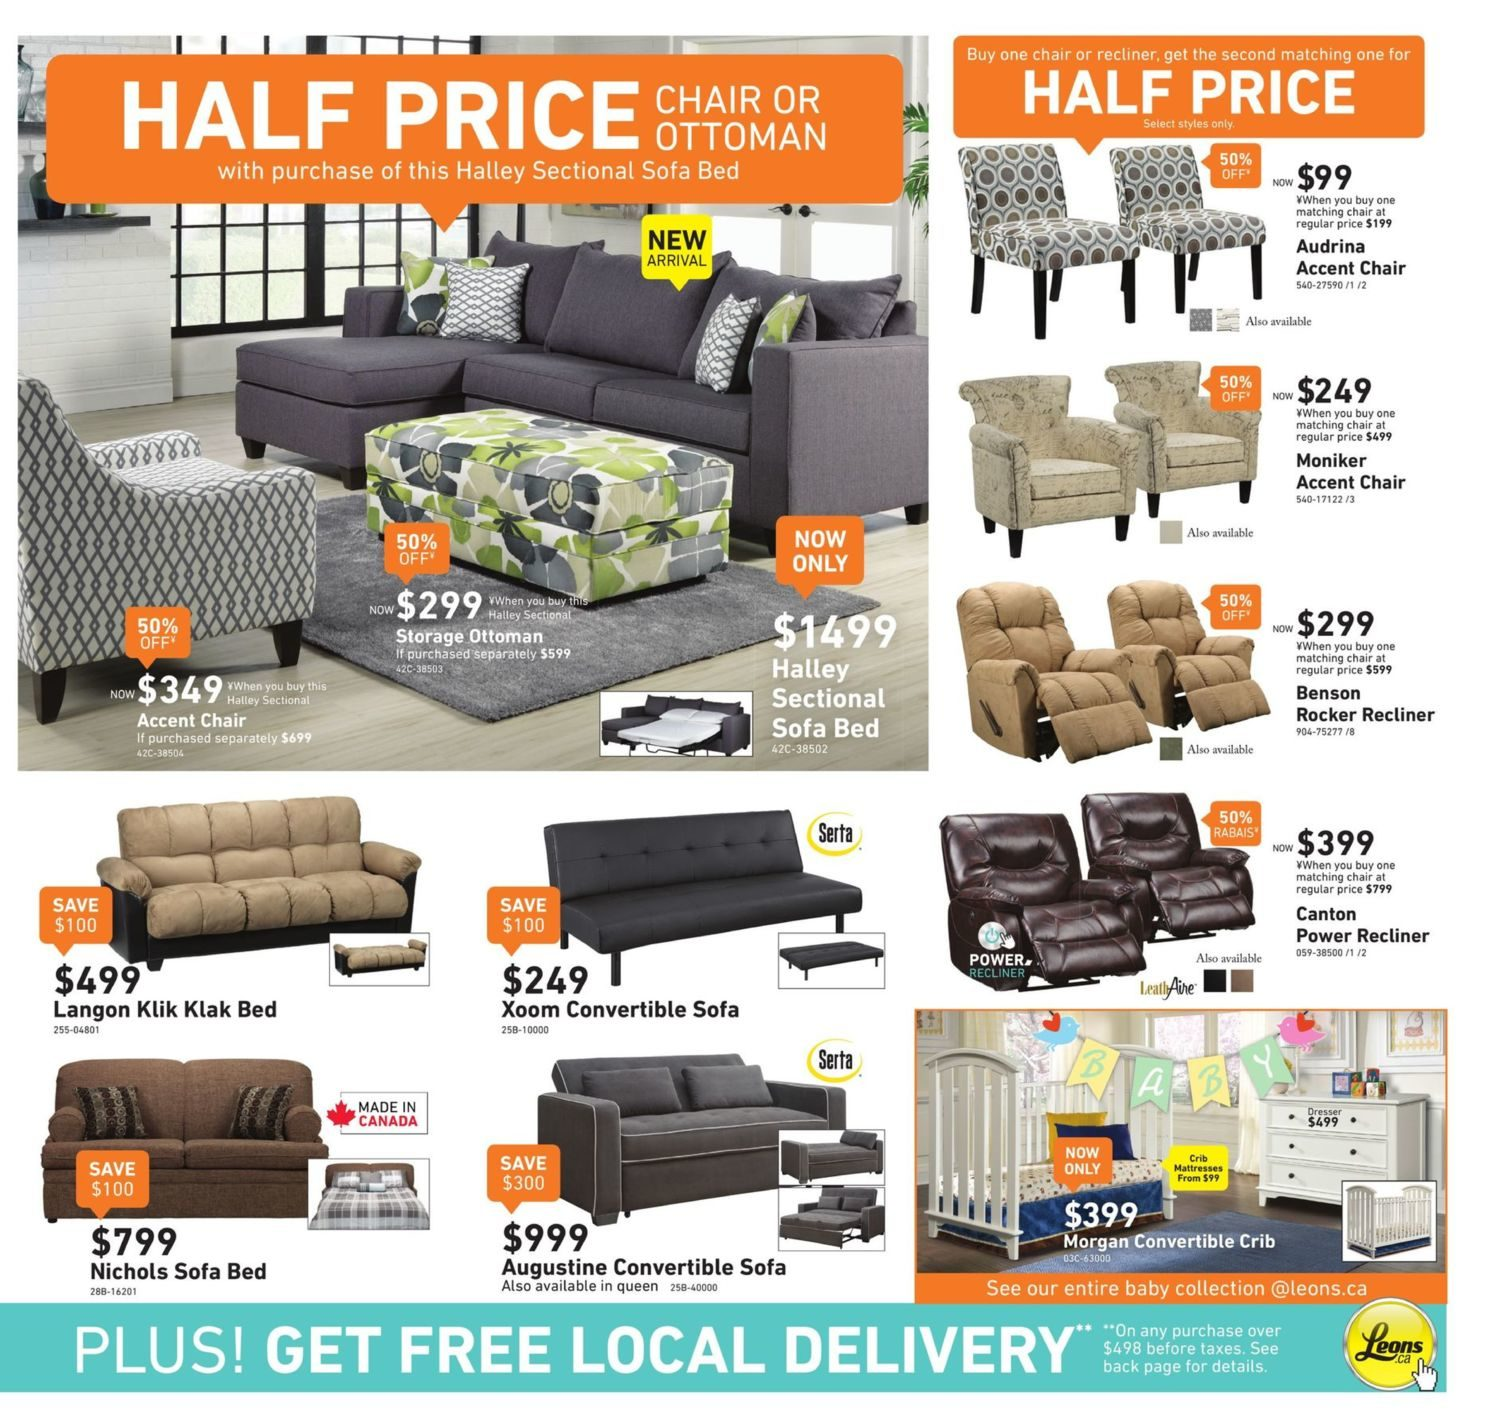 Leon s Weekly Flyer Part of the Family Half Price Sale Jul